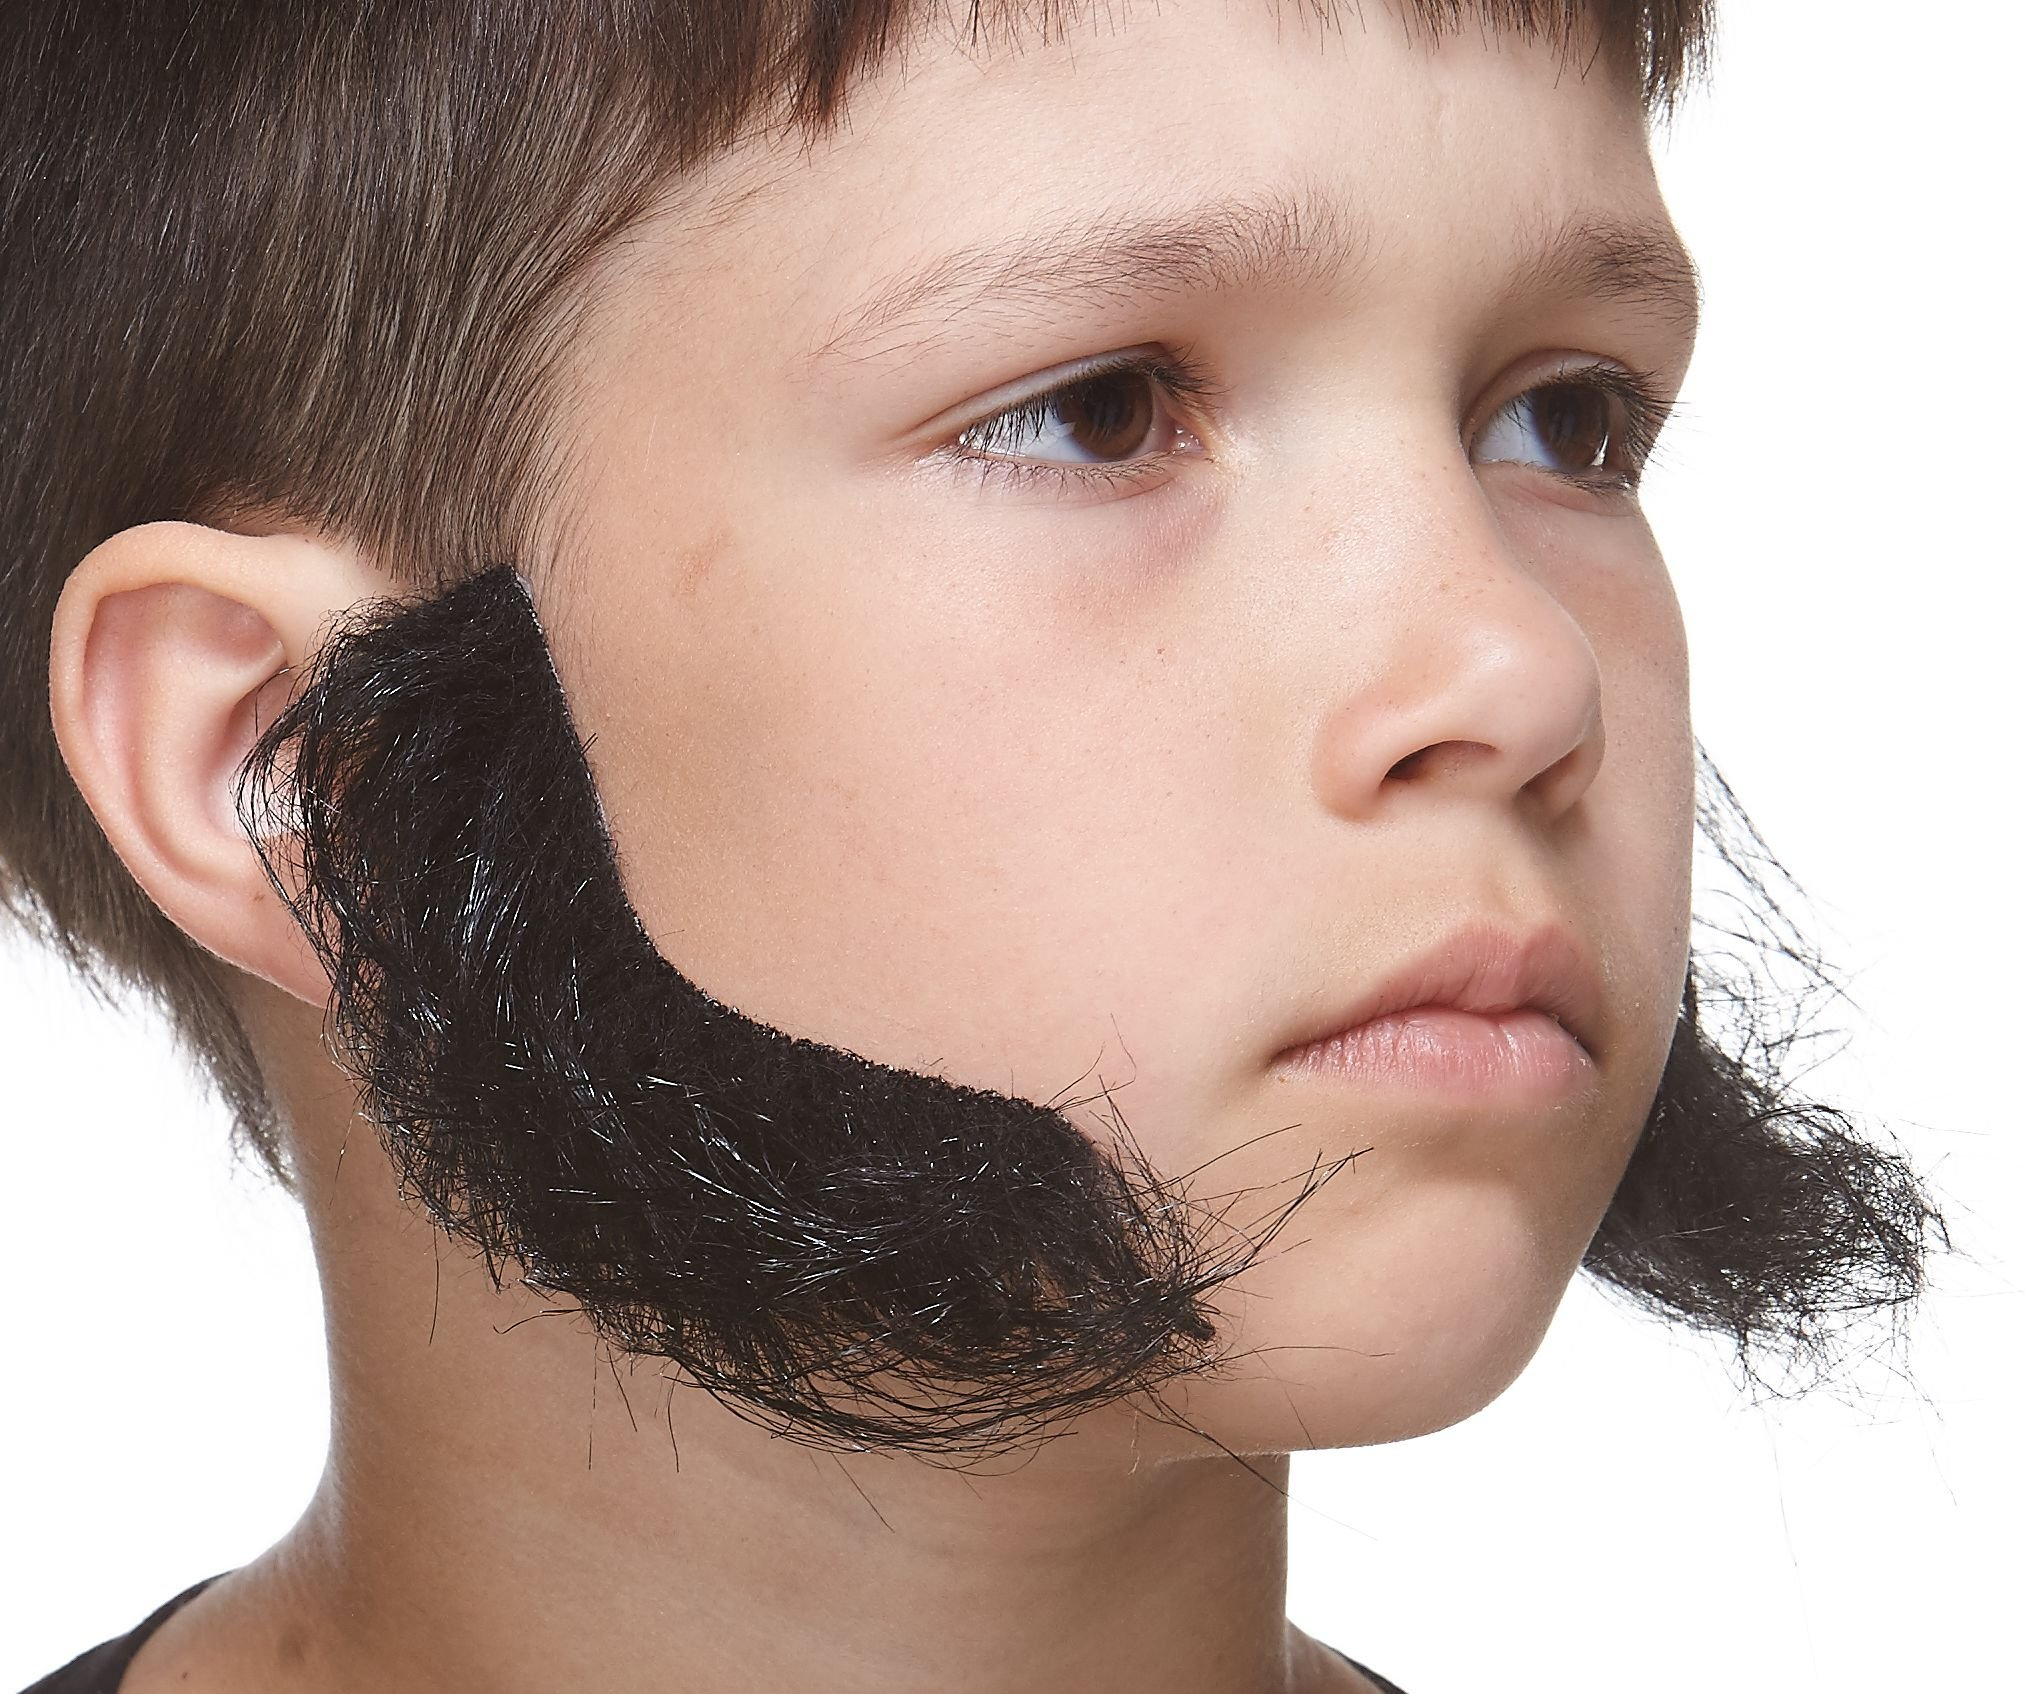 Mustaches Self Adhesive, Novelty, Fake, Realistic, Small L Shaped Mutton Chops Sideburns, Black Color